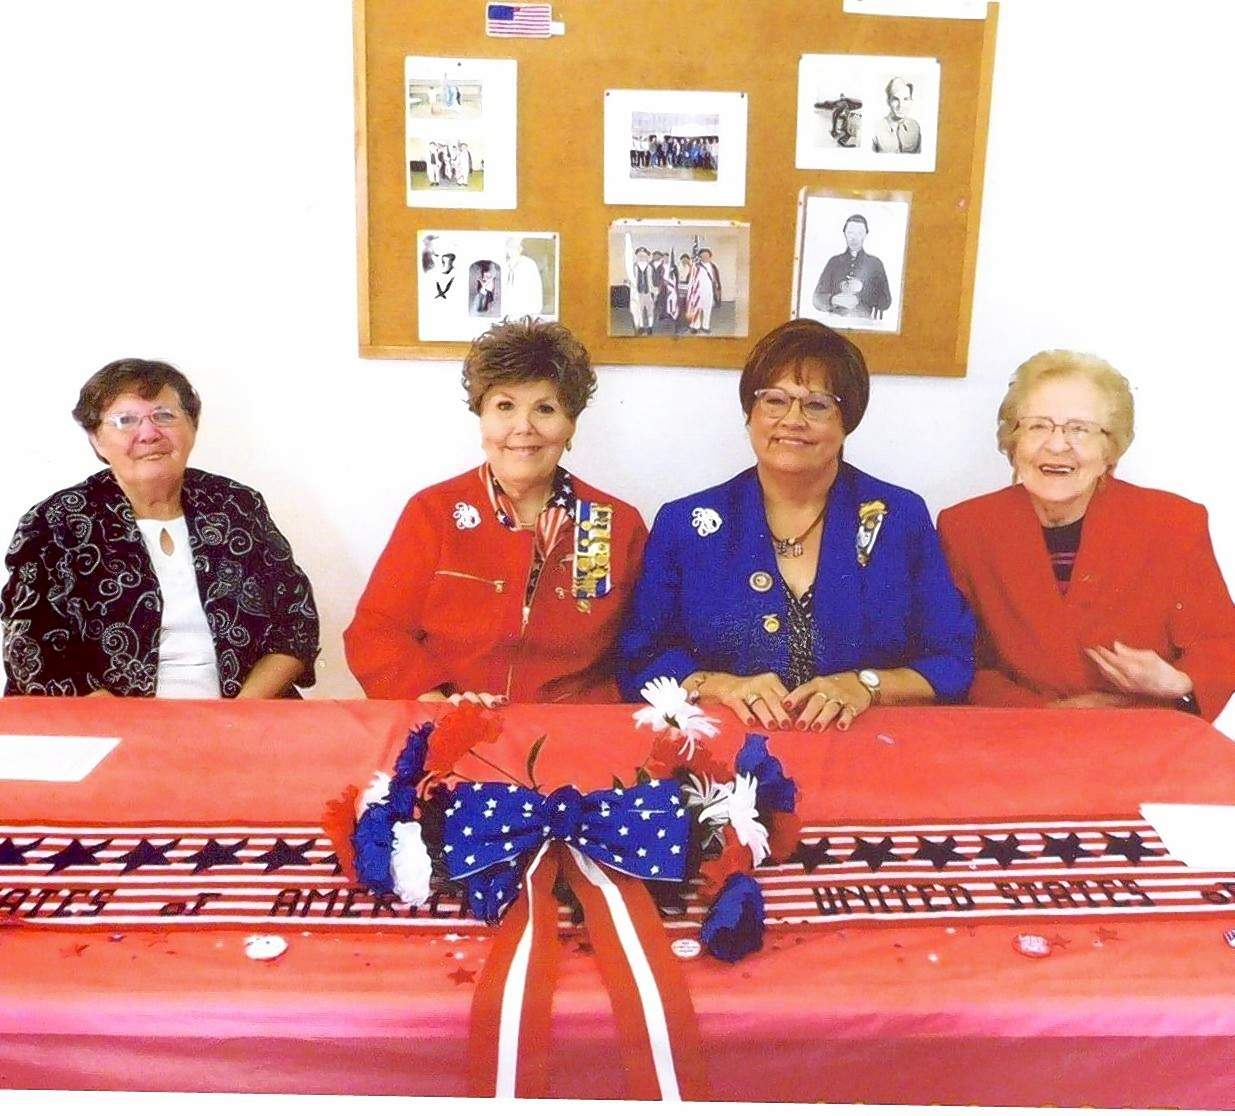 Michael Hillegas Chapter NSDAR members participating in the Veterans Day ceremony are, from left, Delores Vick, Sharon L. Tanner, regent, Shelia Albright, vice regent veteran chair and Dolores Payne.